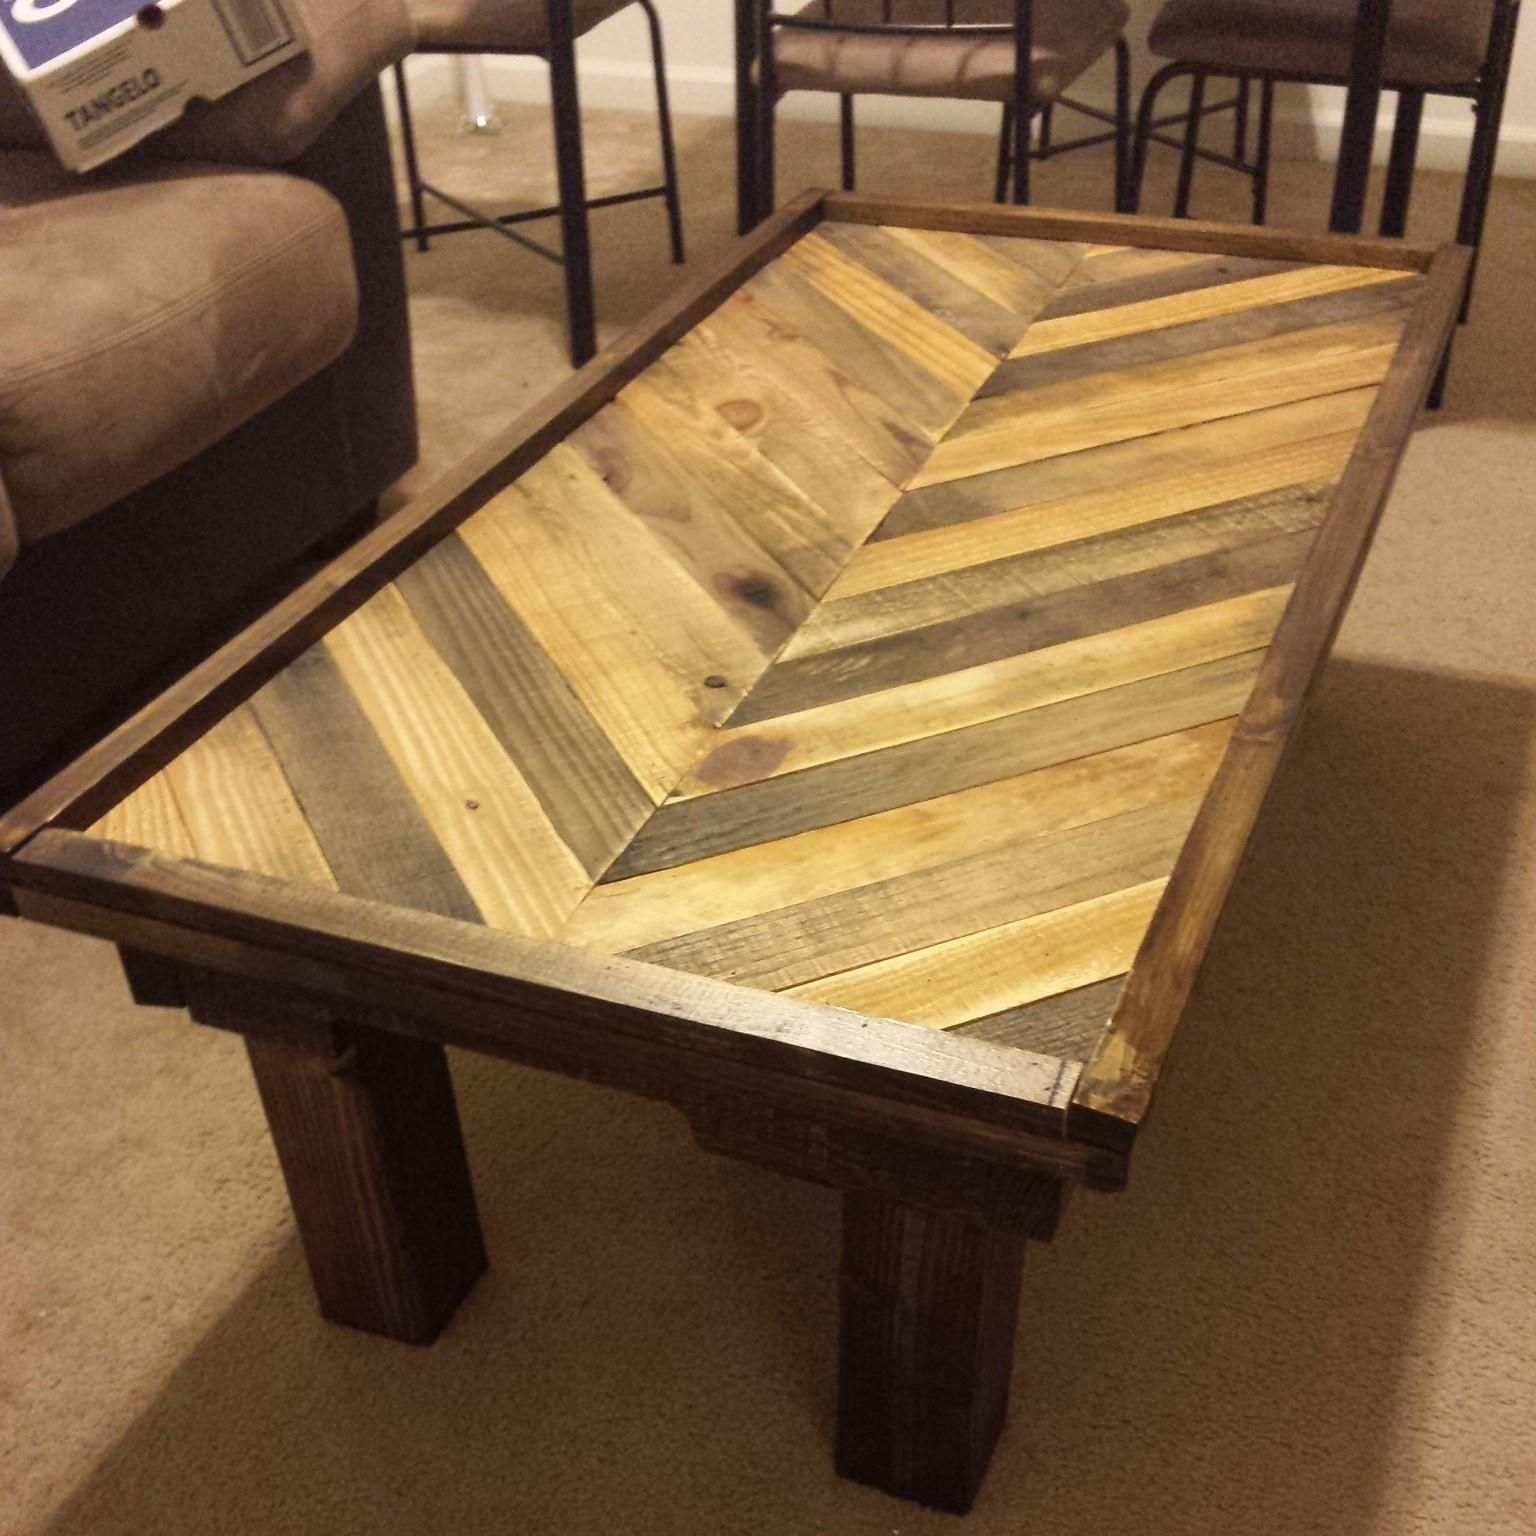 pallet coffee table boards are  inches the table is  ft by   - pallet coffee table boards are  inches the table is  ft by